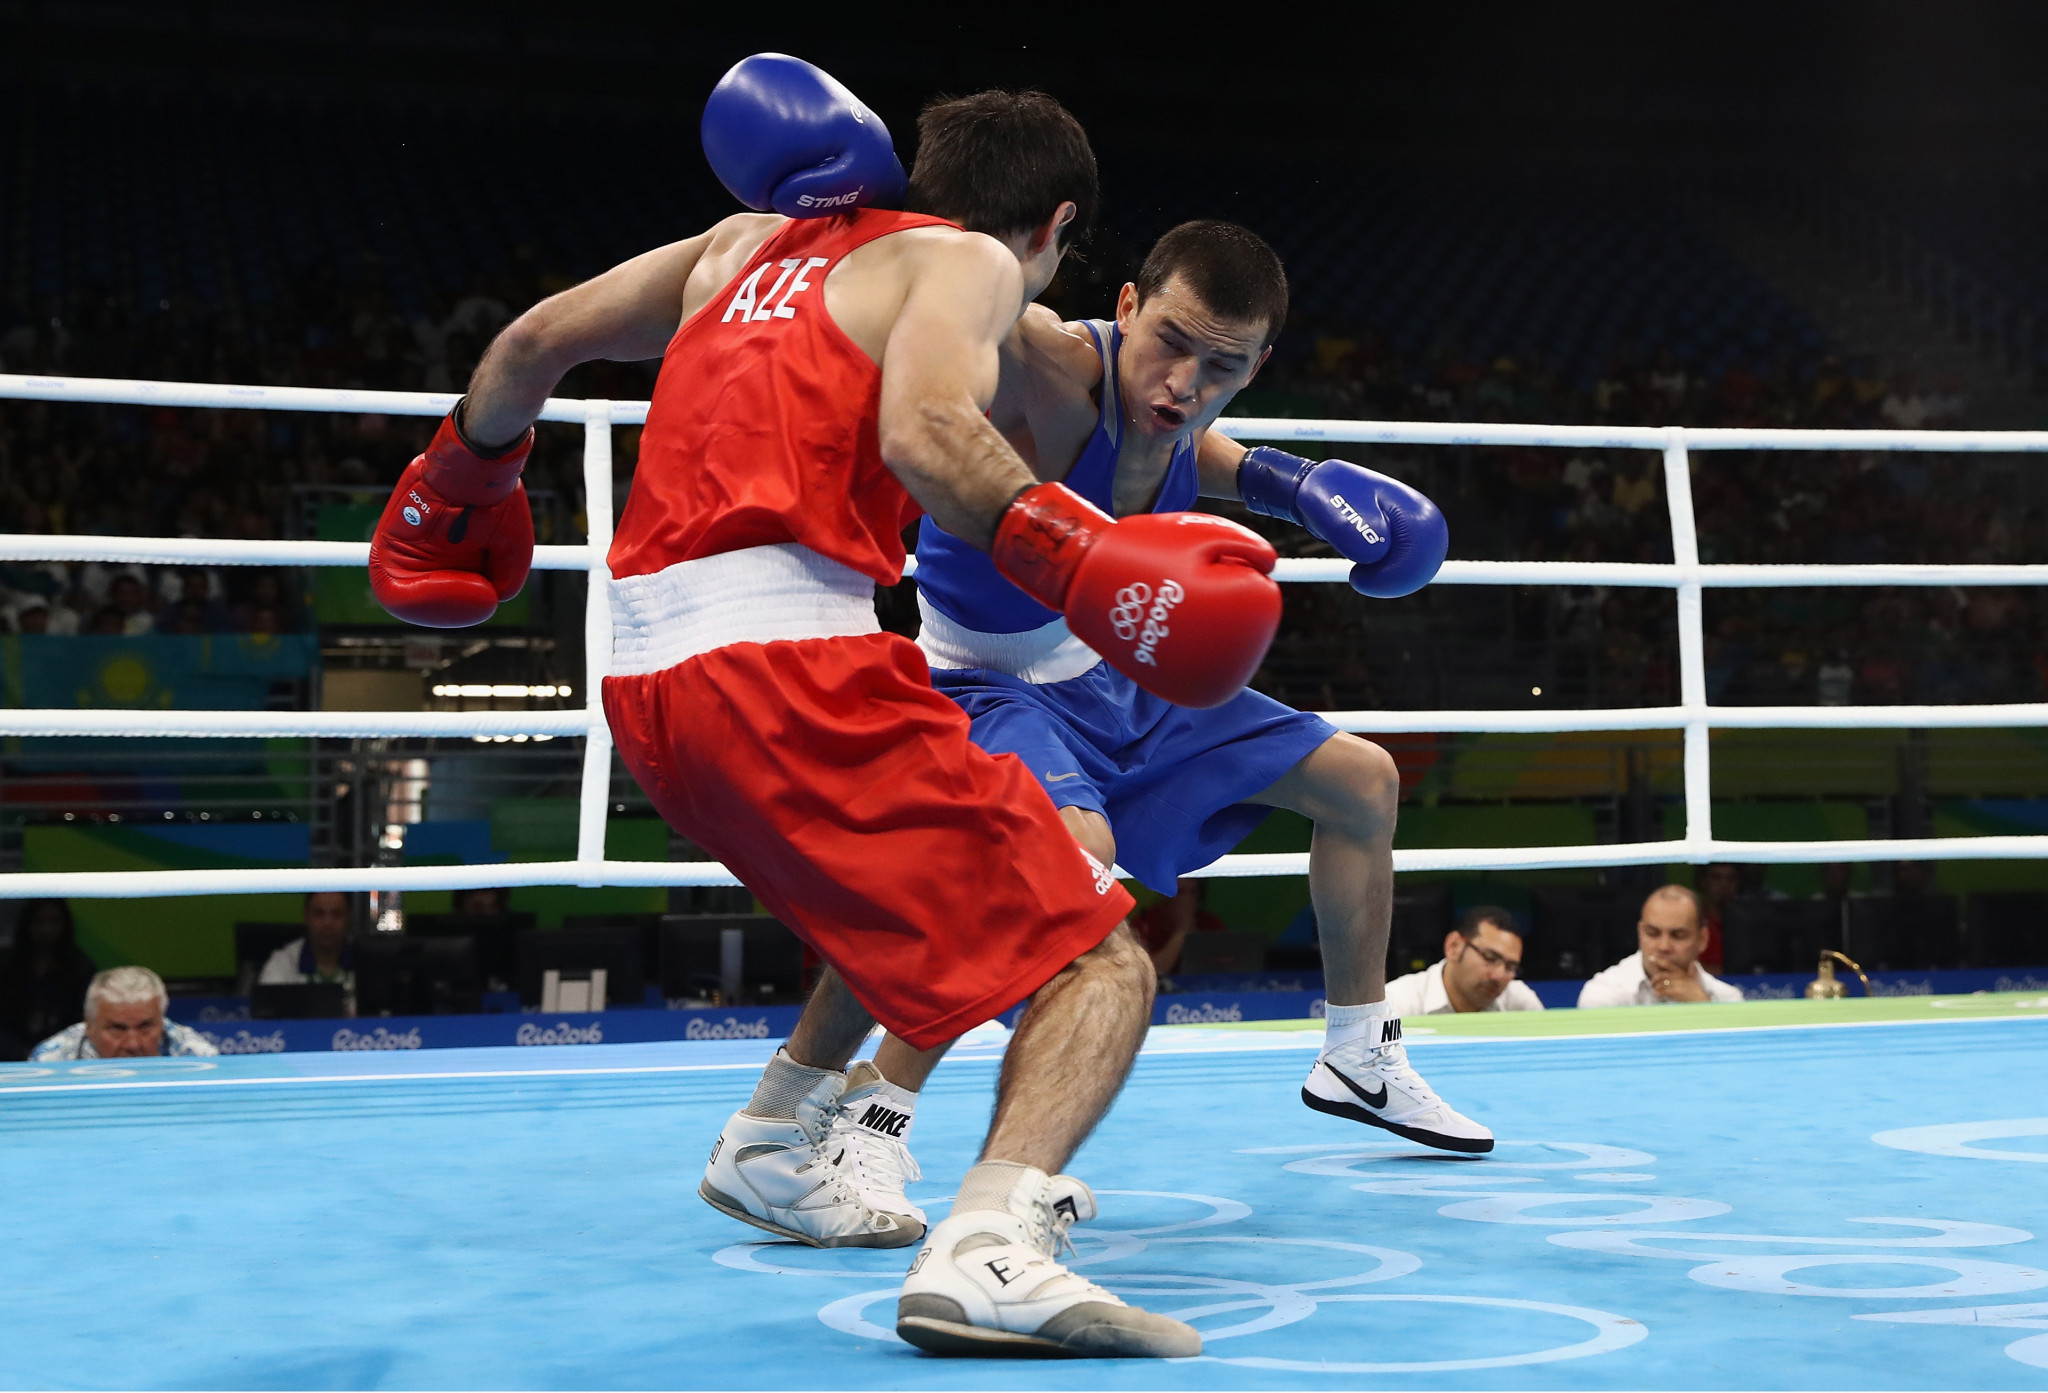 England Boxing are the only Member Federation to have publicly questioned why Gafur Rakhimov remains head of AIBA in the face of the threat to boxing's Olympic future at Tokyo 2020 ©Getty Images